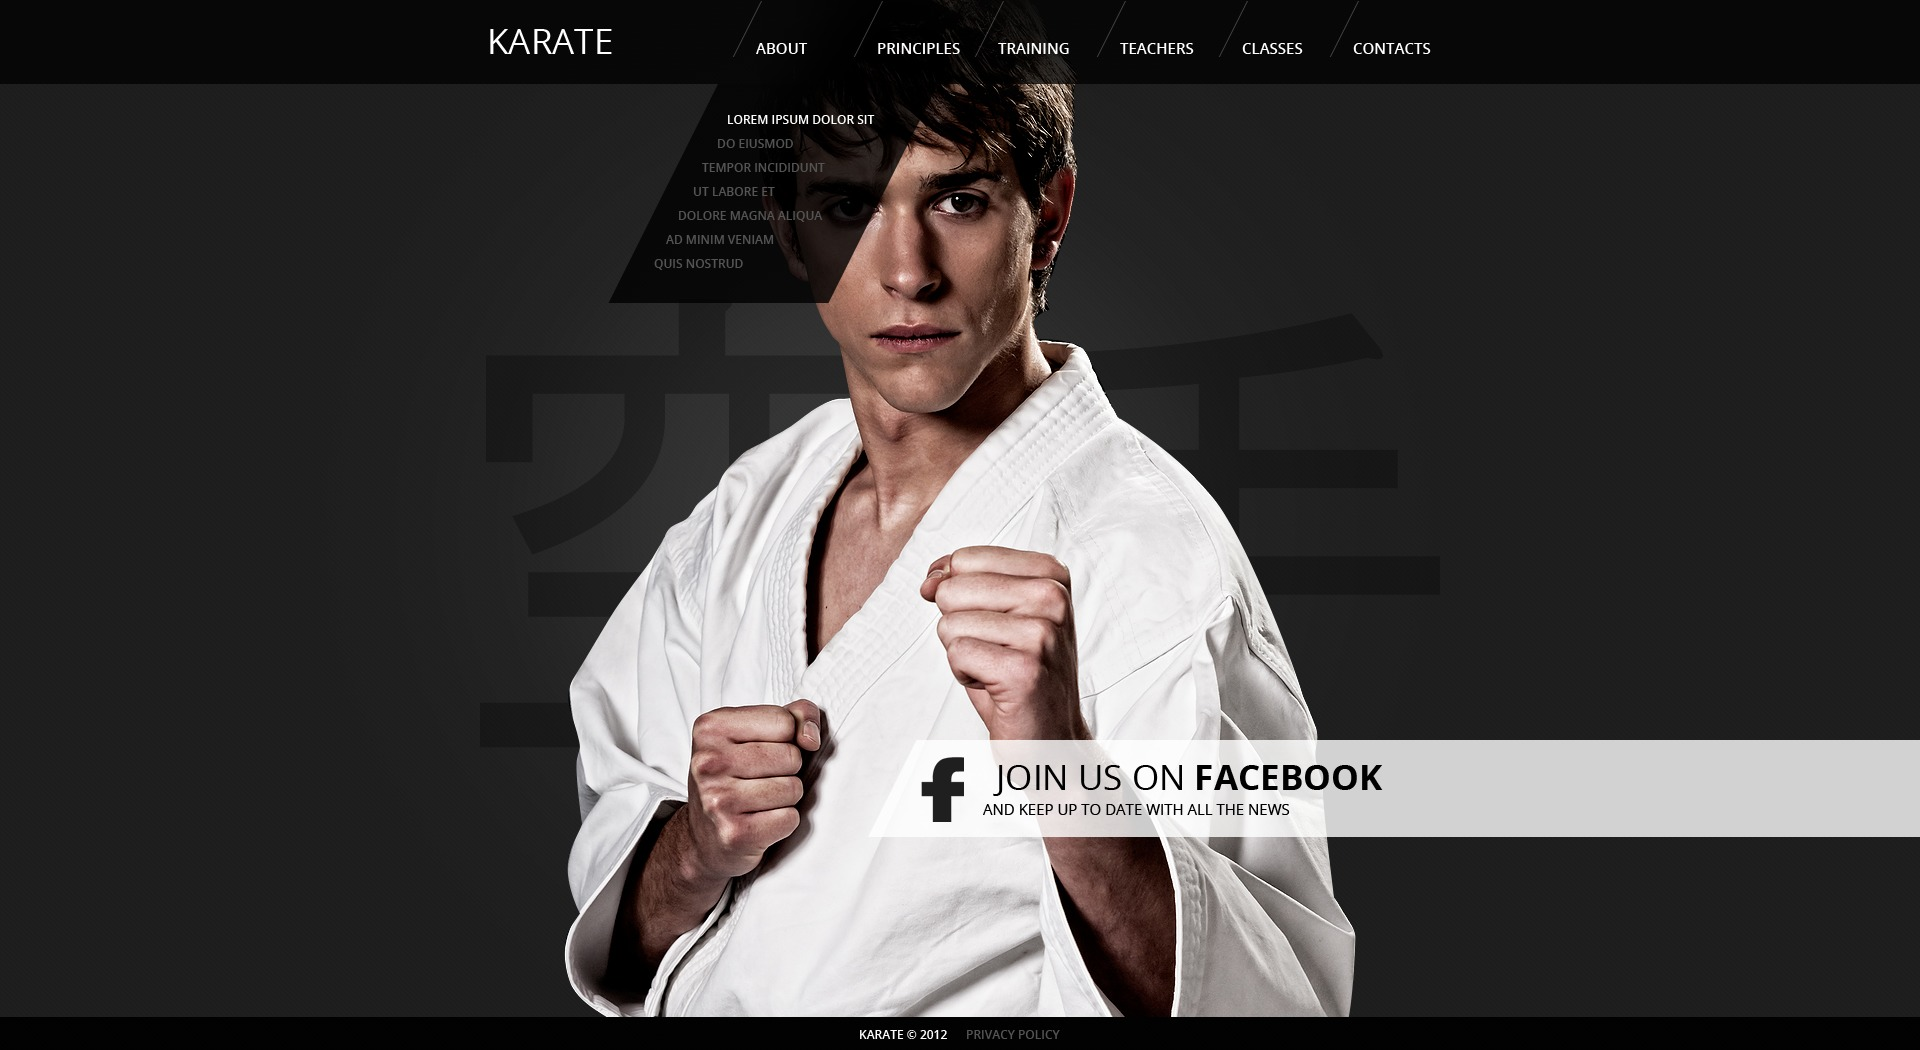 Karate dating site